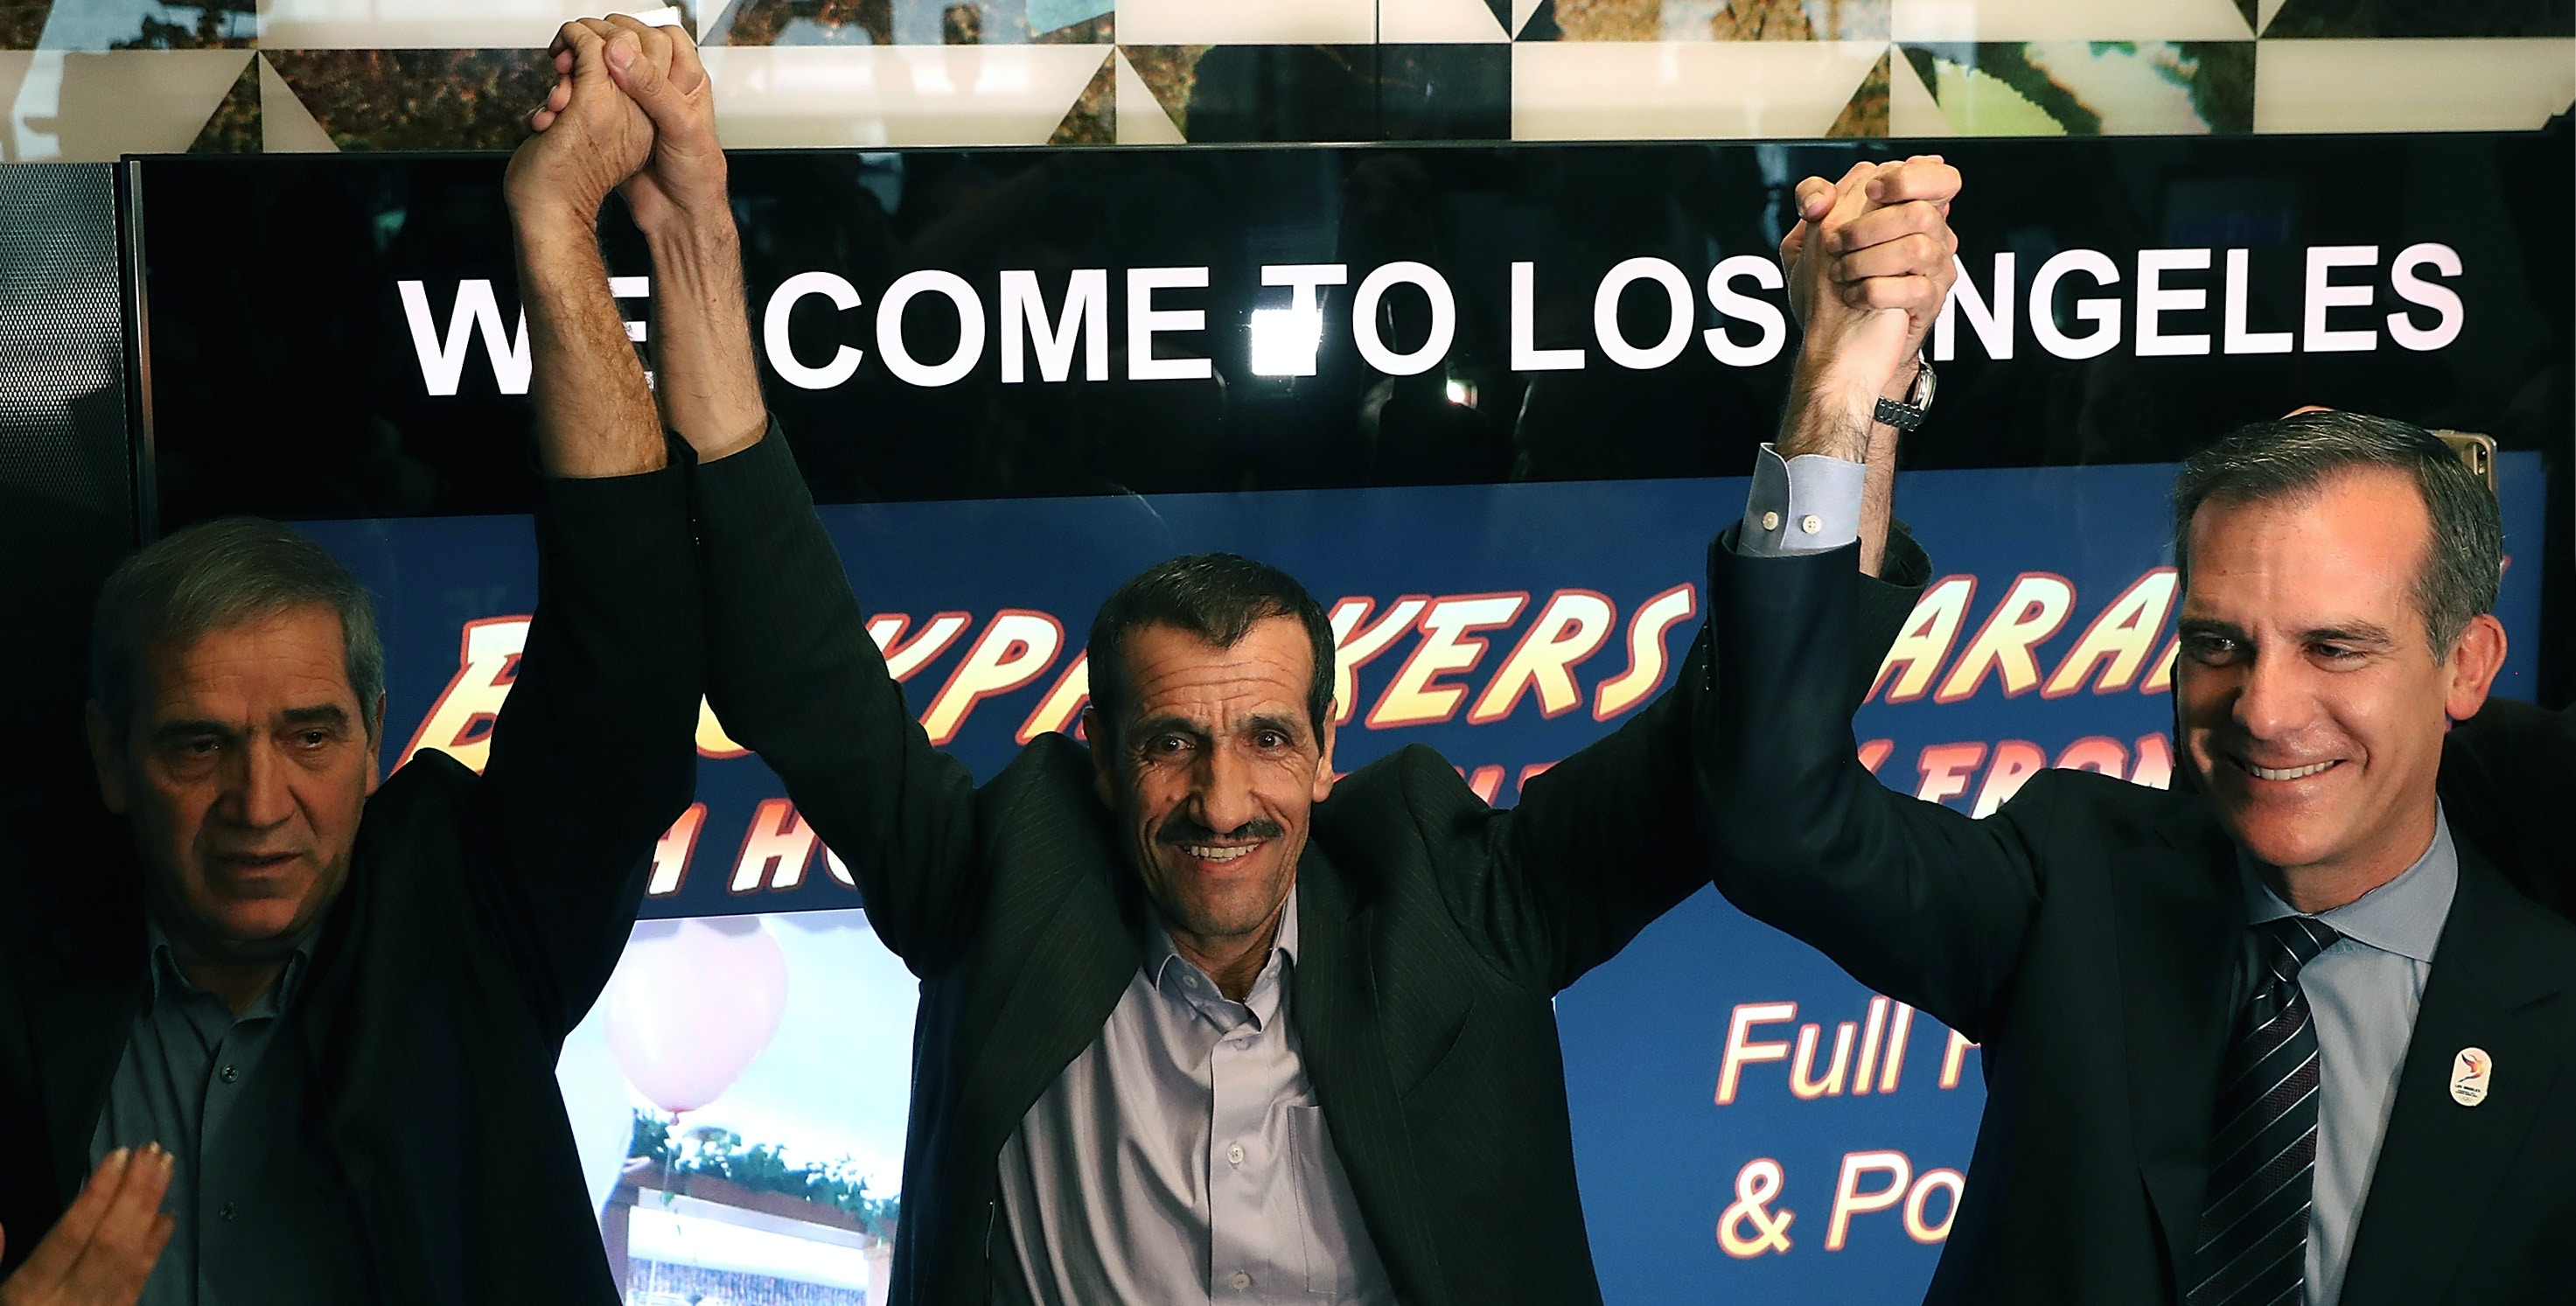 LOS ANGELES, CA - FEBRUARY 02:  (L-R) Hossein Vayeghan raises his arms with his brother, Iranian citizen Ali Vayeghan and  Los Angeles Mayor Eric Garcetti as he arrives at Los Angeles International Airport on February 2, 2017 in Los Angeles, California.  Iranian citizen Ali Vayeghan was detained and sent back to Iran after arriving in the United States on the day that U.S. President Donald Trump's travel ban was implemented.  (Photo by Justin Sullivan/Getty Images)